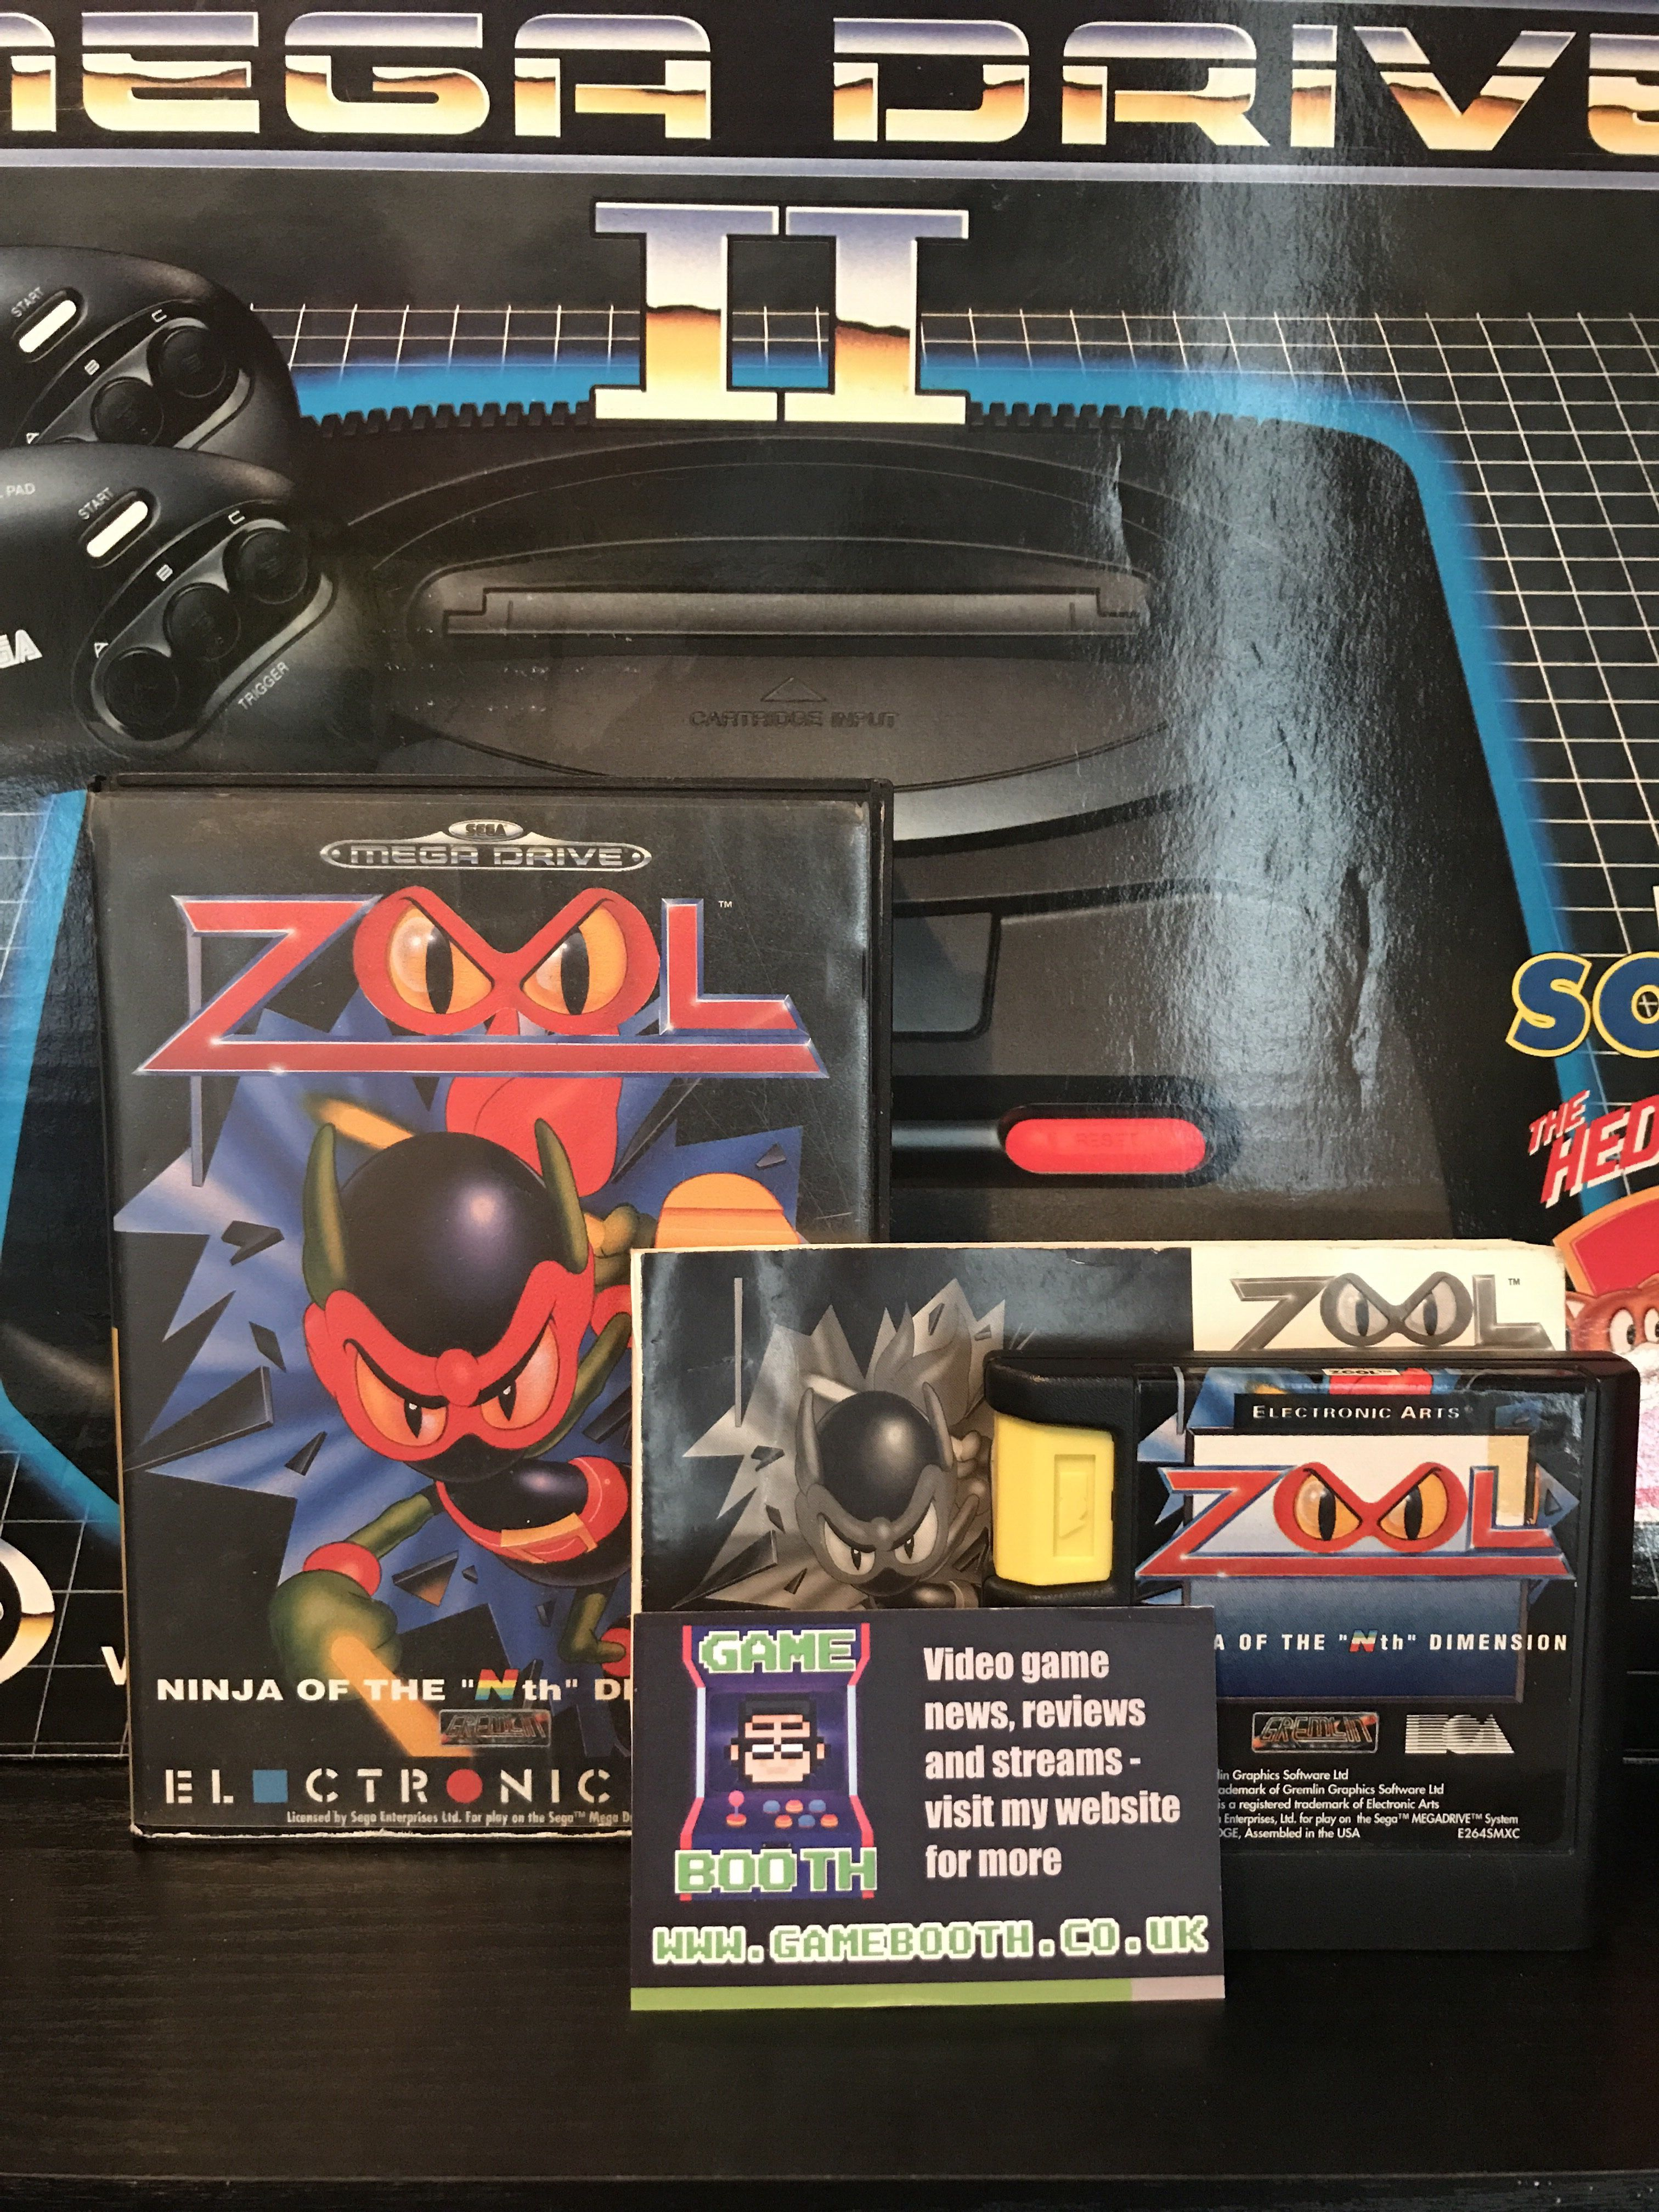 Game of the Day: Zool Ninja of the Nth Dimension! #sega